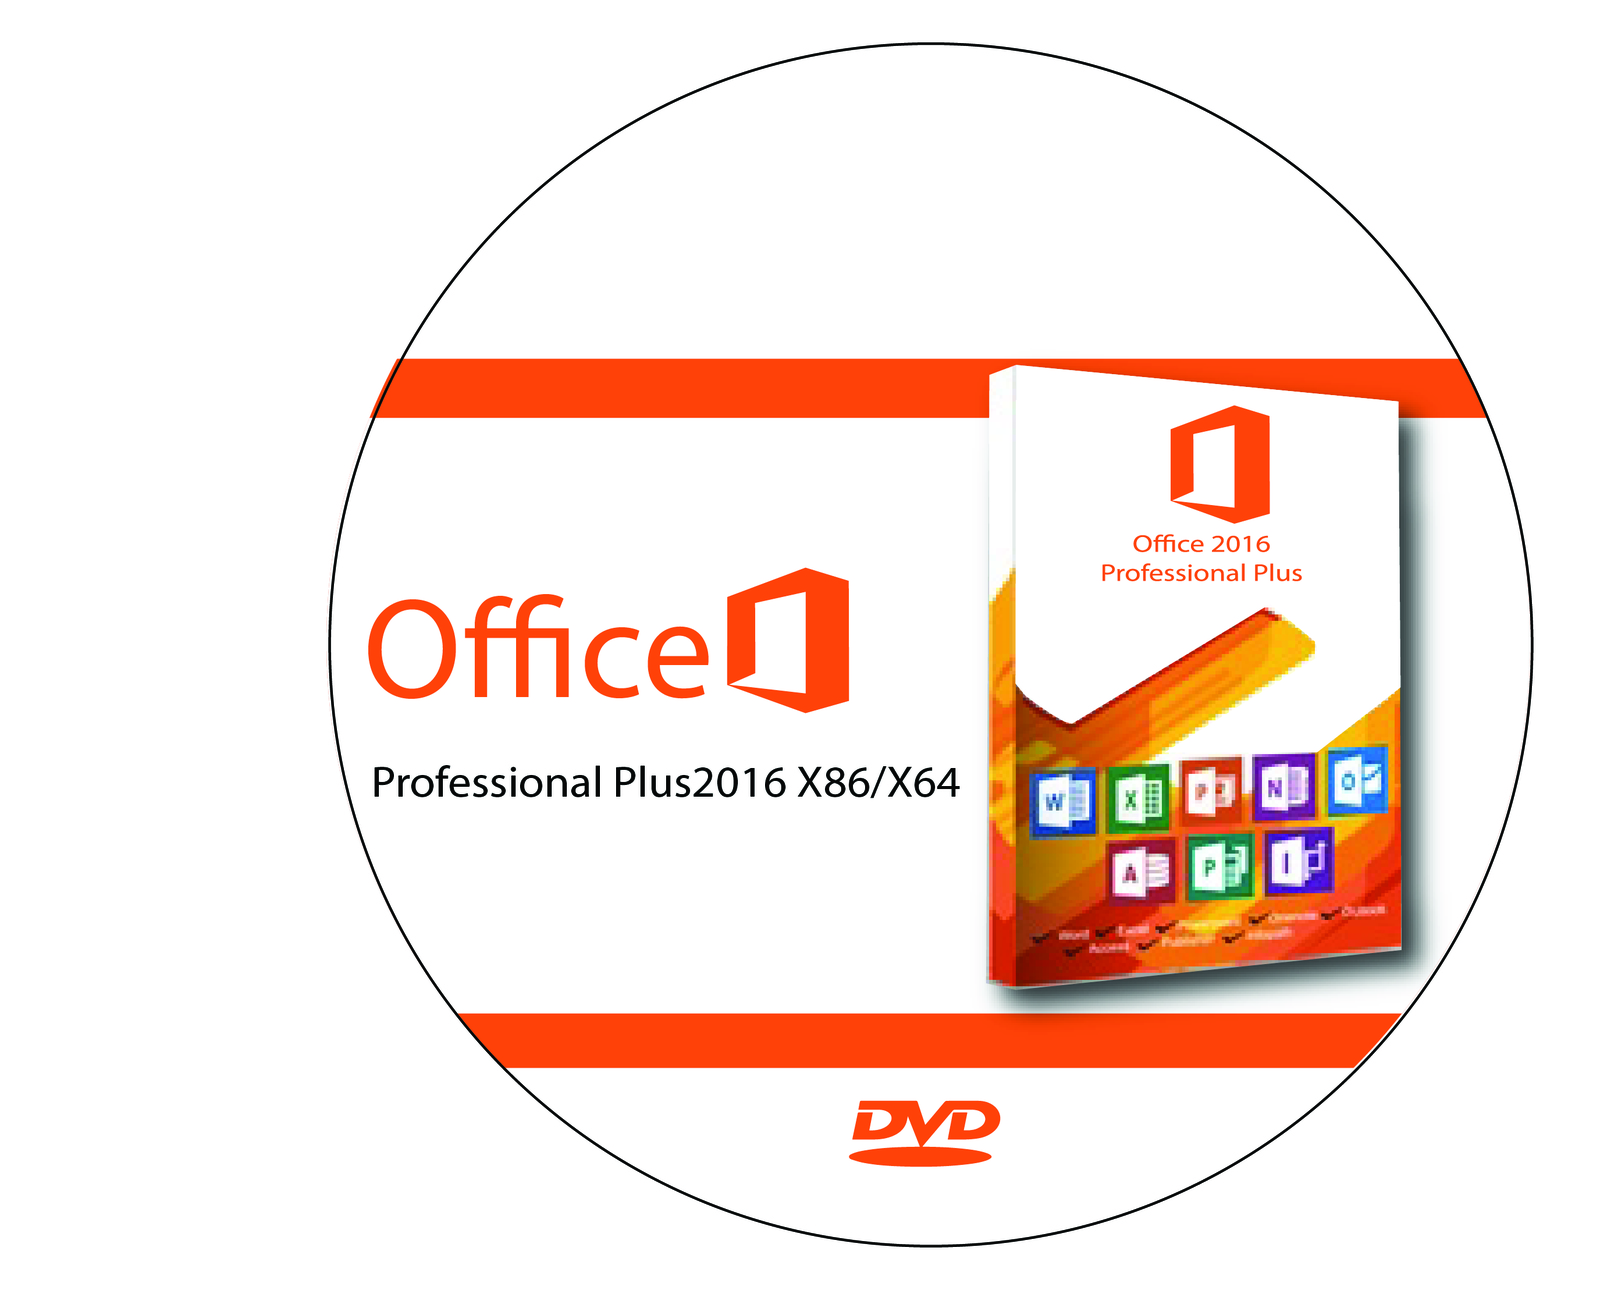 Microsoft Office 2016 Pro Plus Preview X86 X64 Full Picture Gallery Professional Dvd Brand New Genuine 1 Pc Licenses